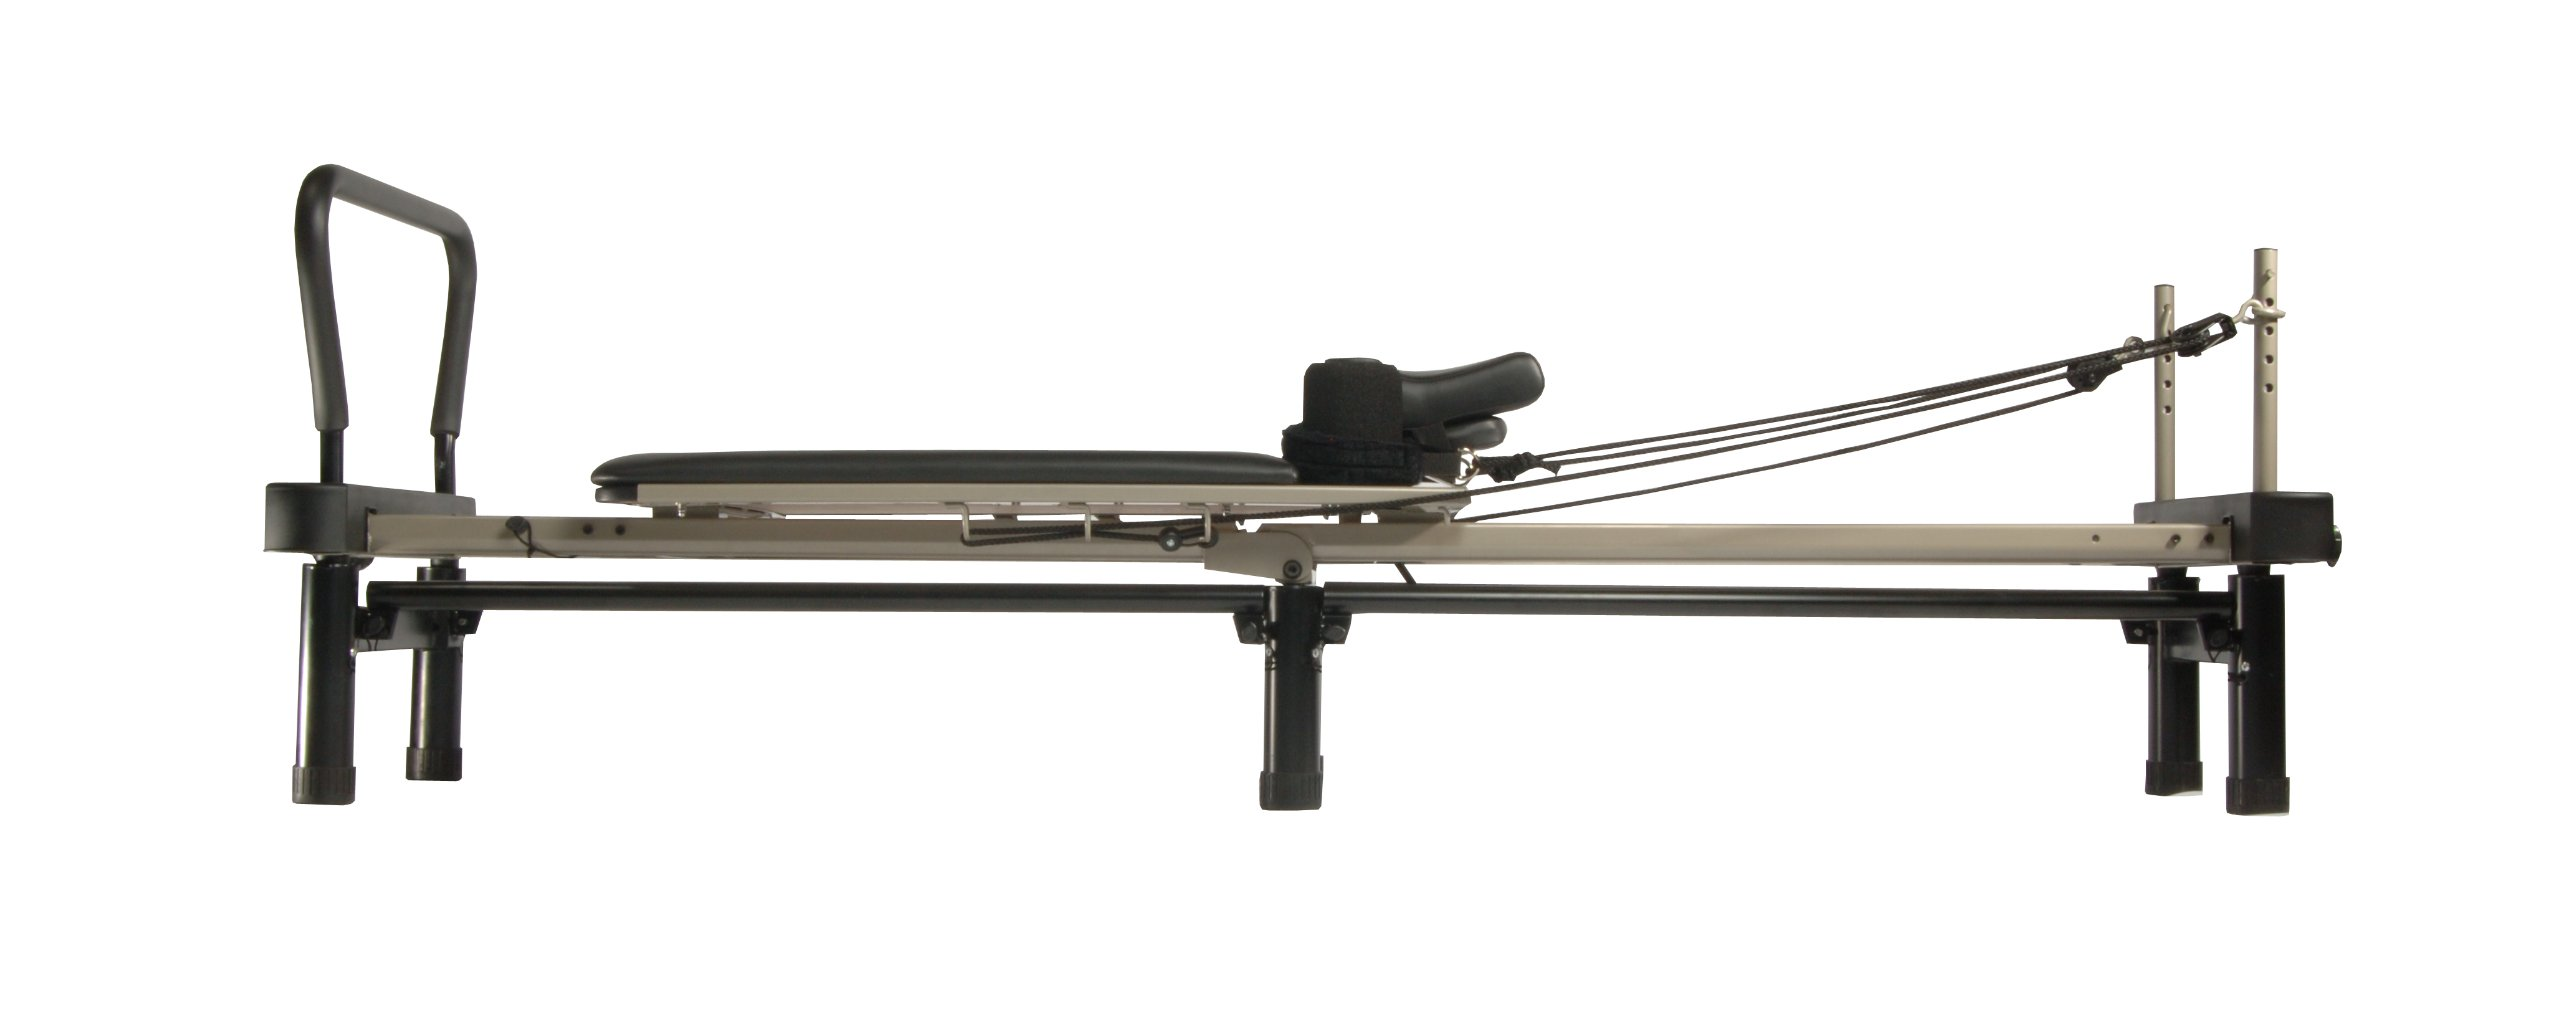 Stamina AeroPilates 700 Premier Reformer with Stand, Cardio Rebounder, Neck Pillow and DVDs by Stamina (Image #5)